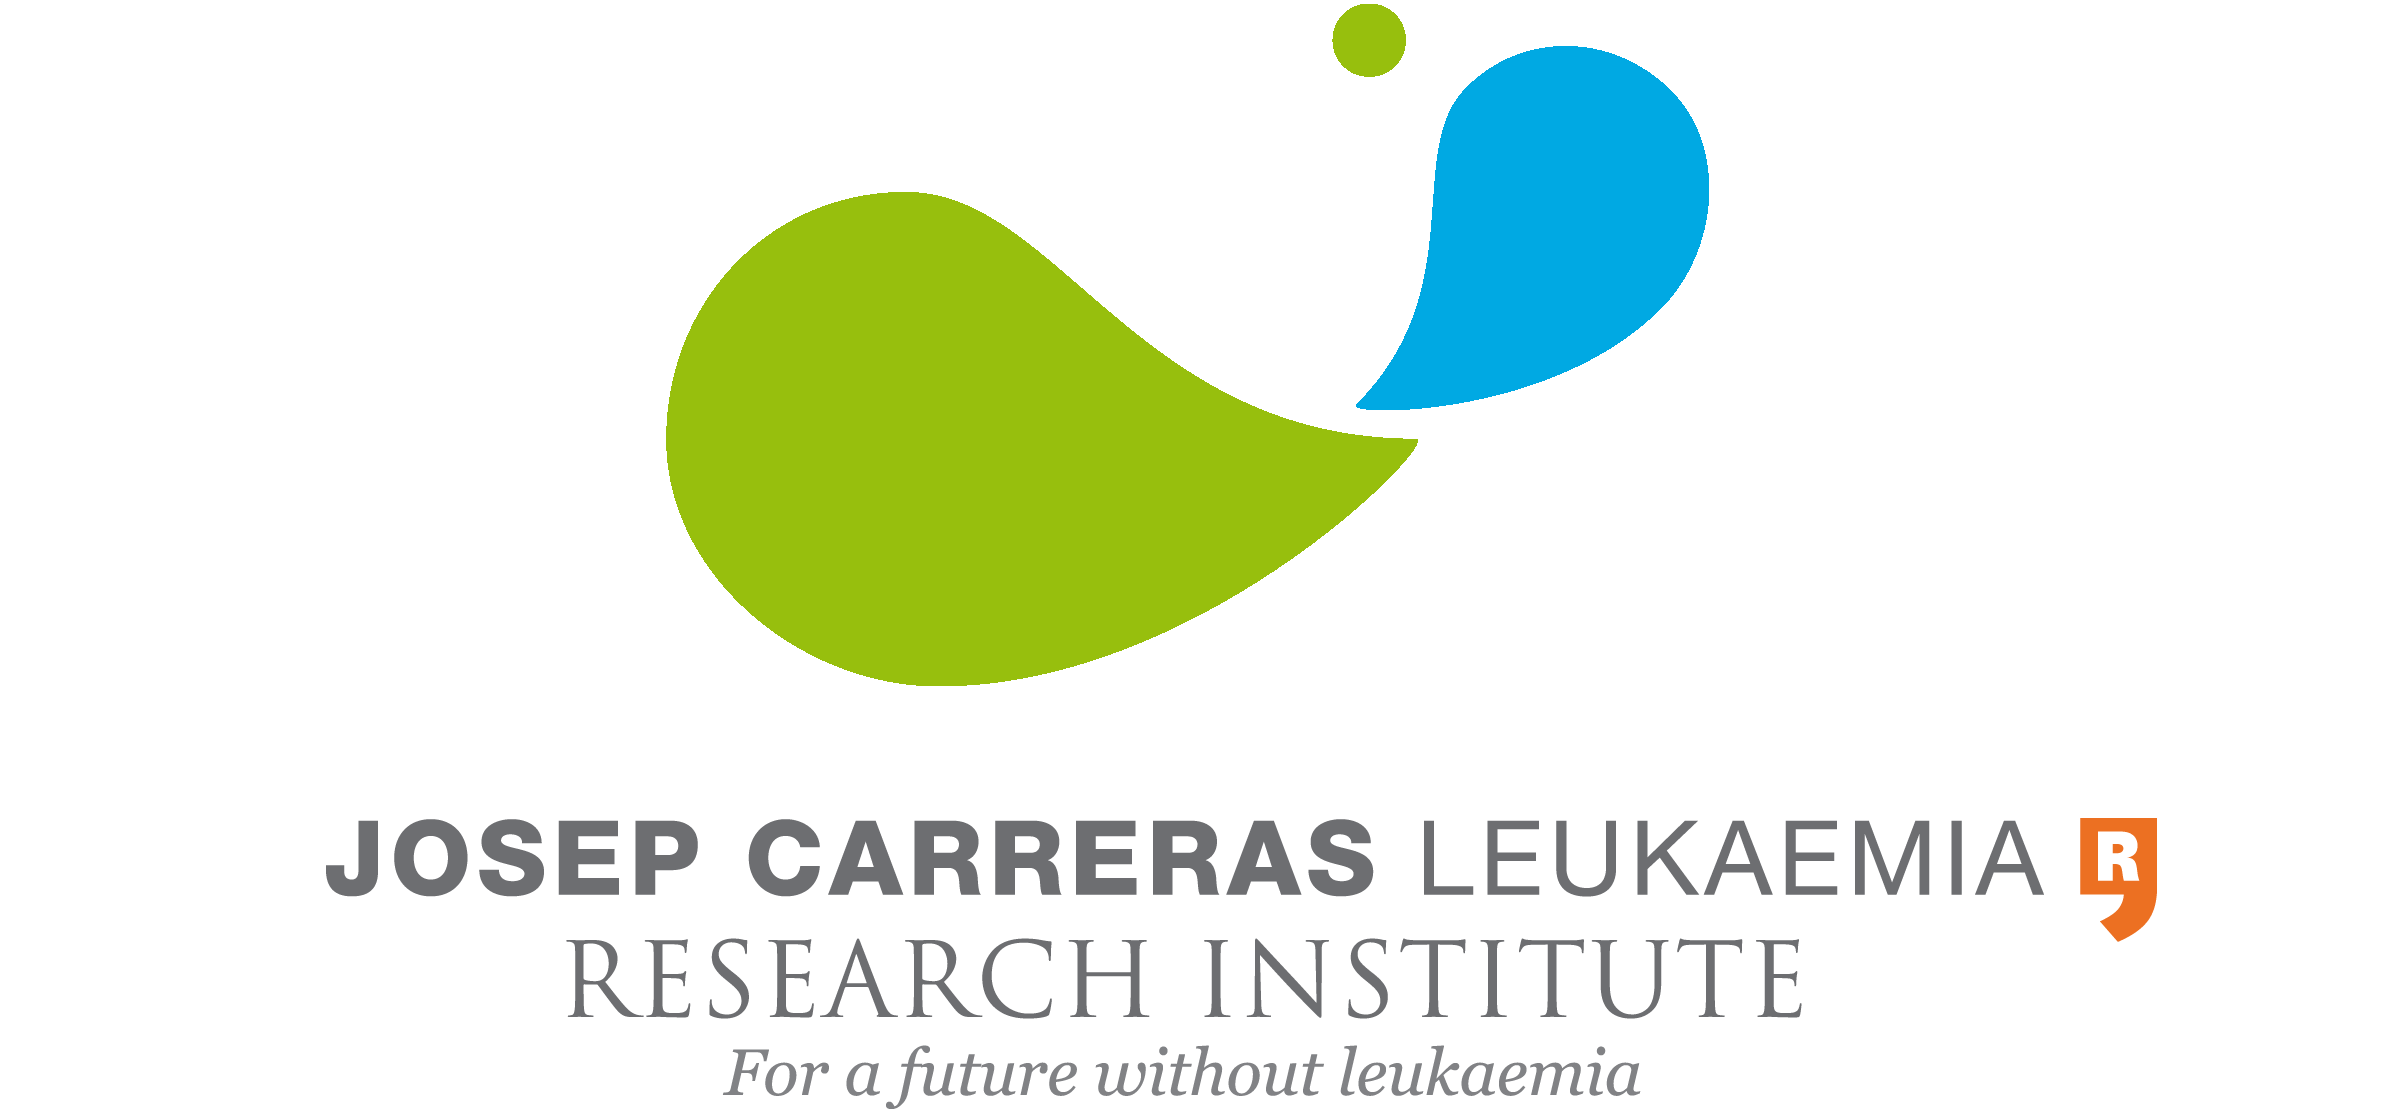 Logo Josep Carreras Research Institute english